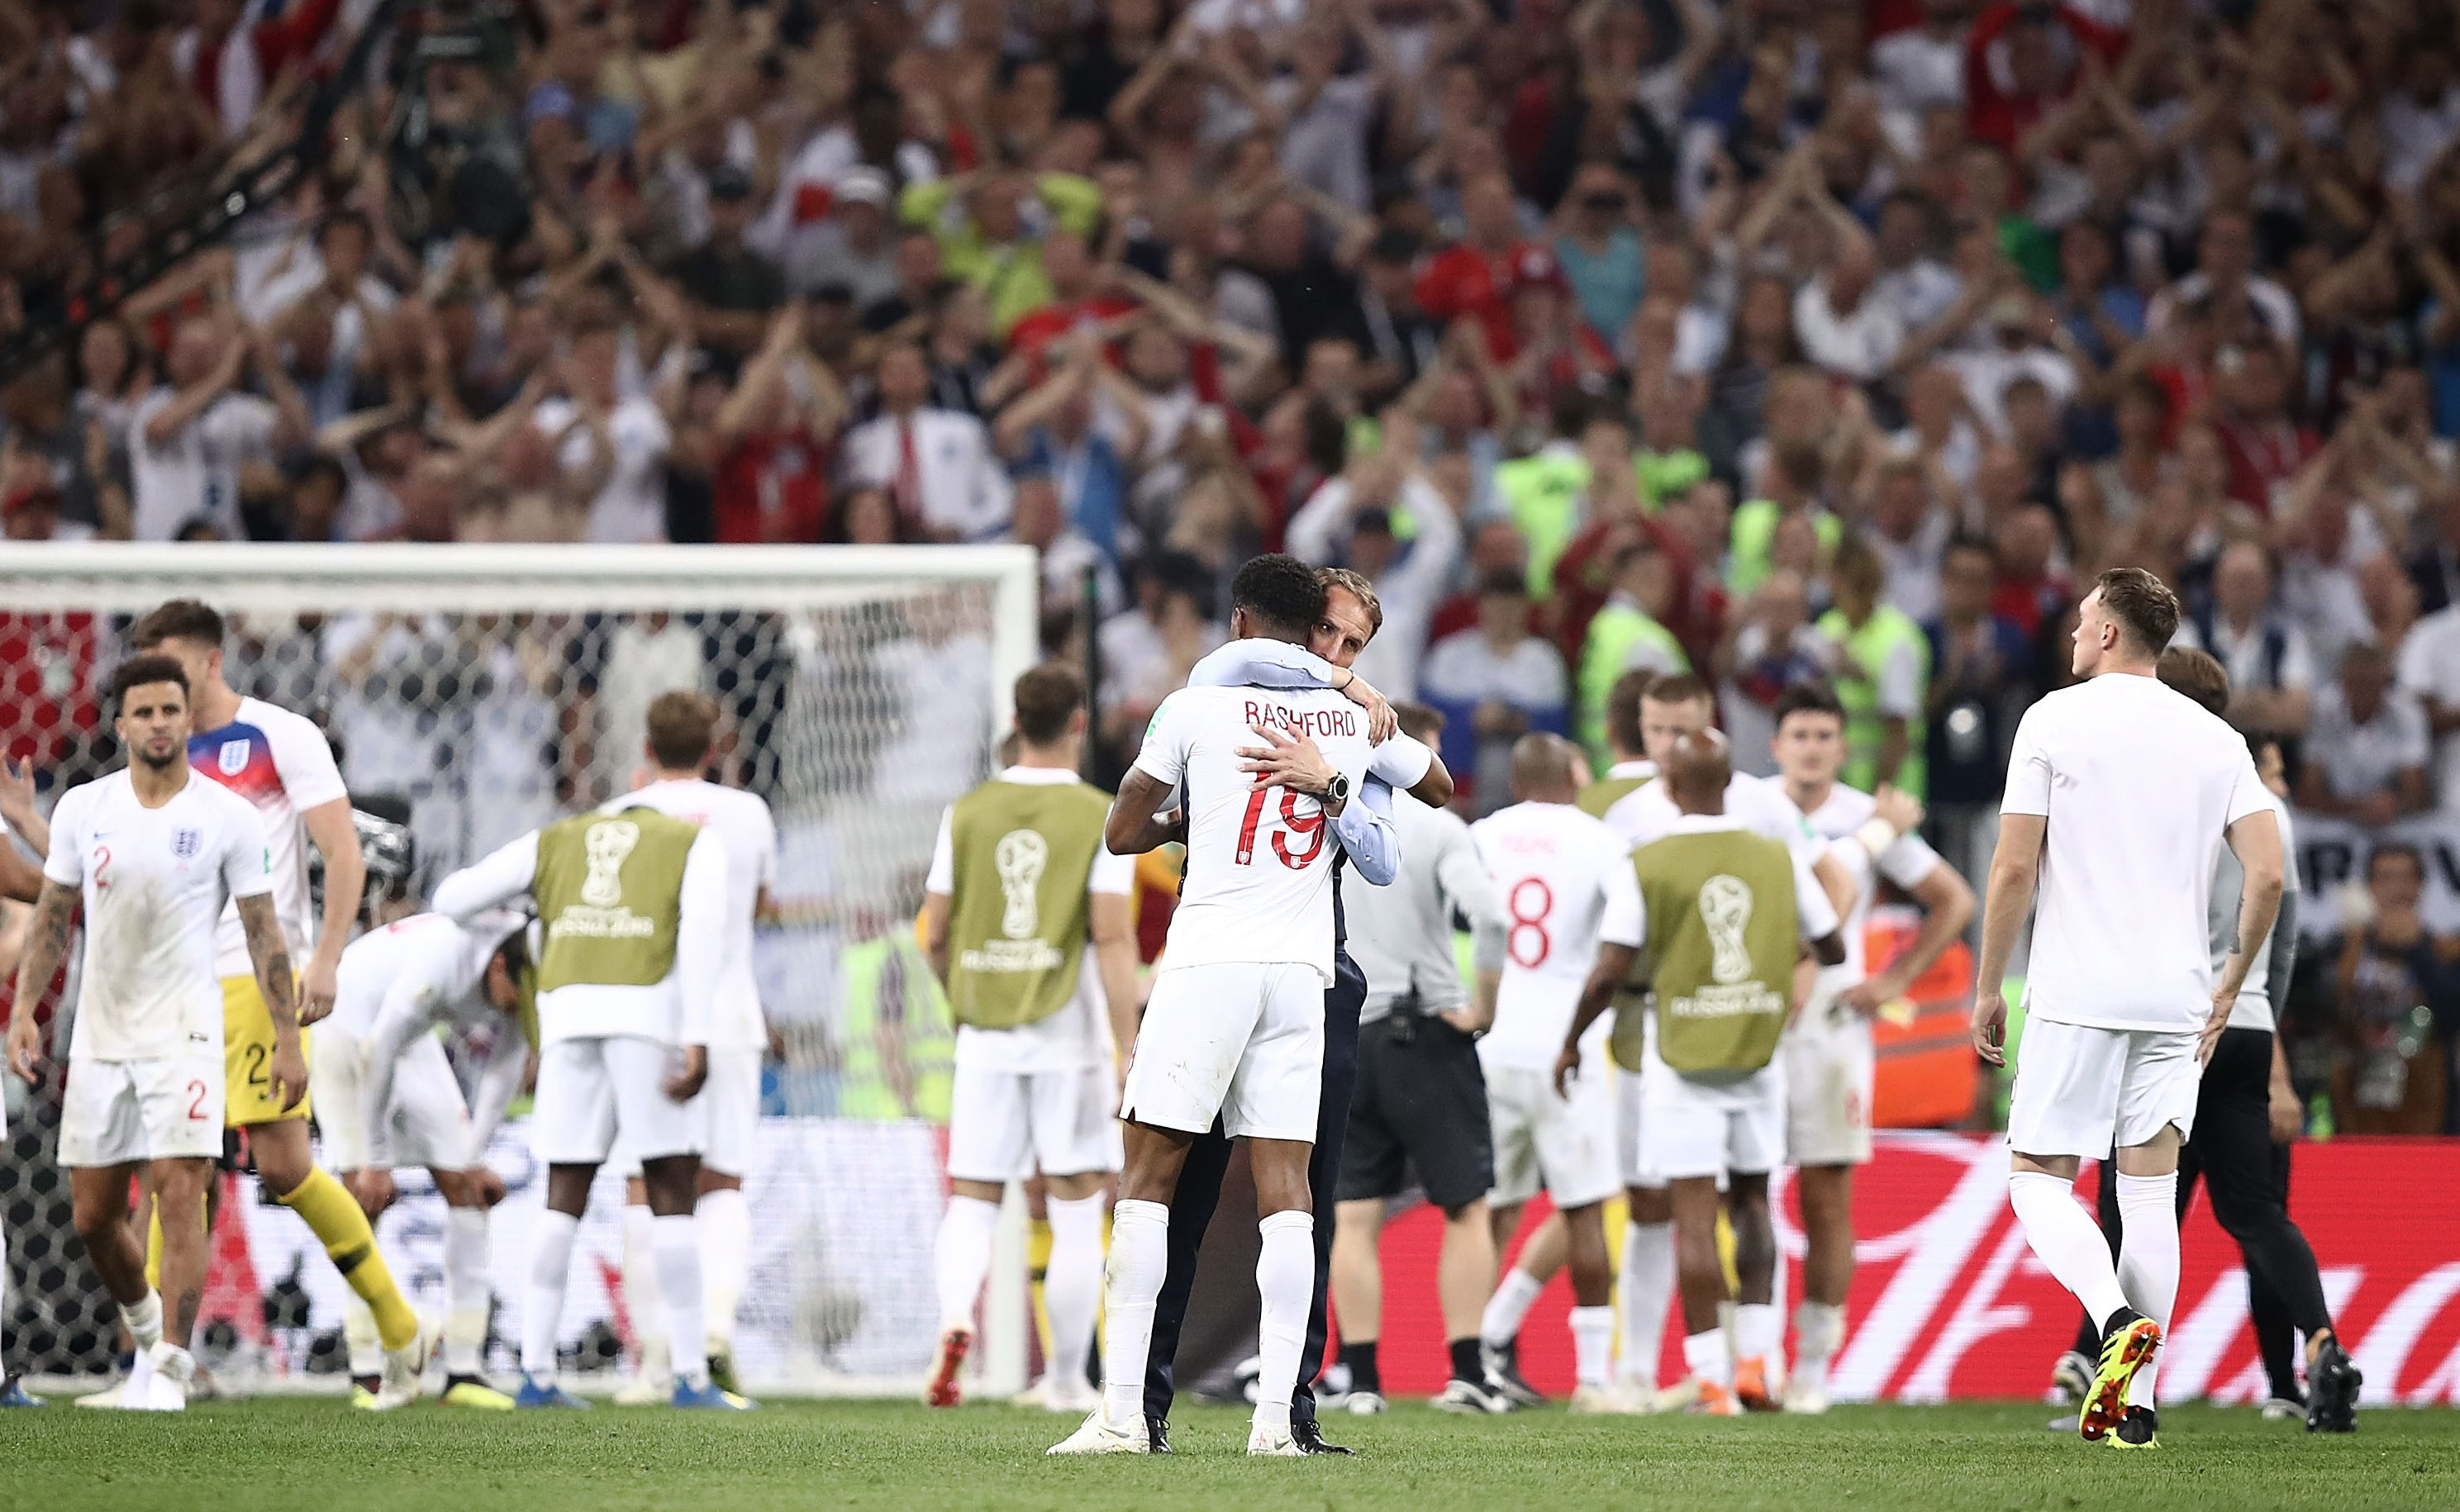 Gareth Southgate commiserates with Marcus Rashford as the England players come to terms with being knocked out of the World Cup (Ryan Pierse/Getty Images)